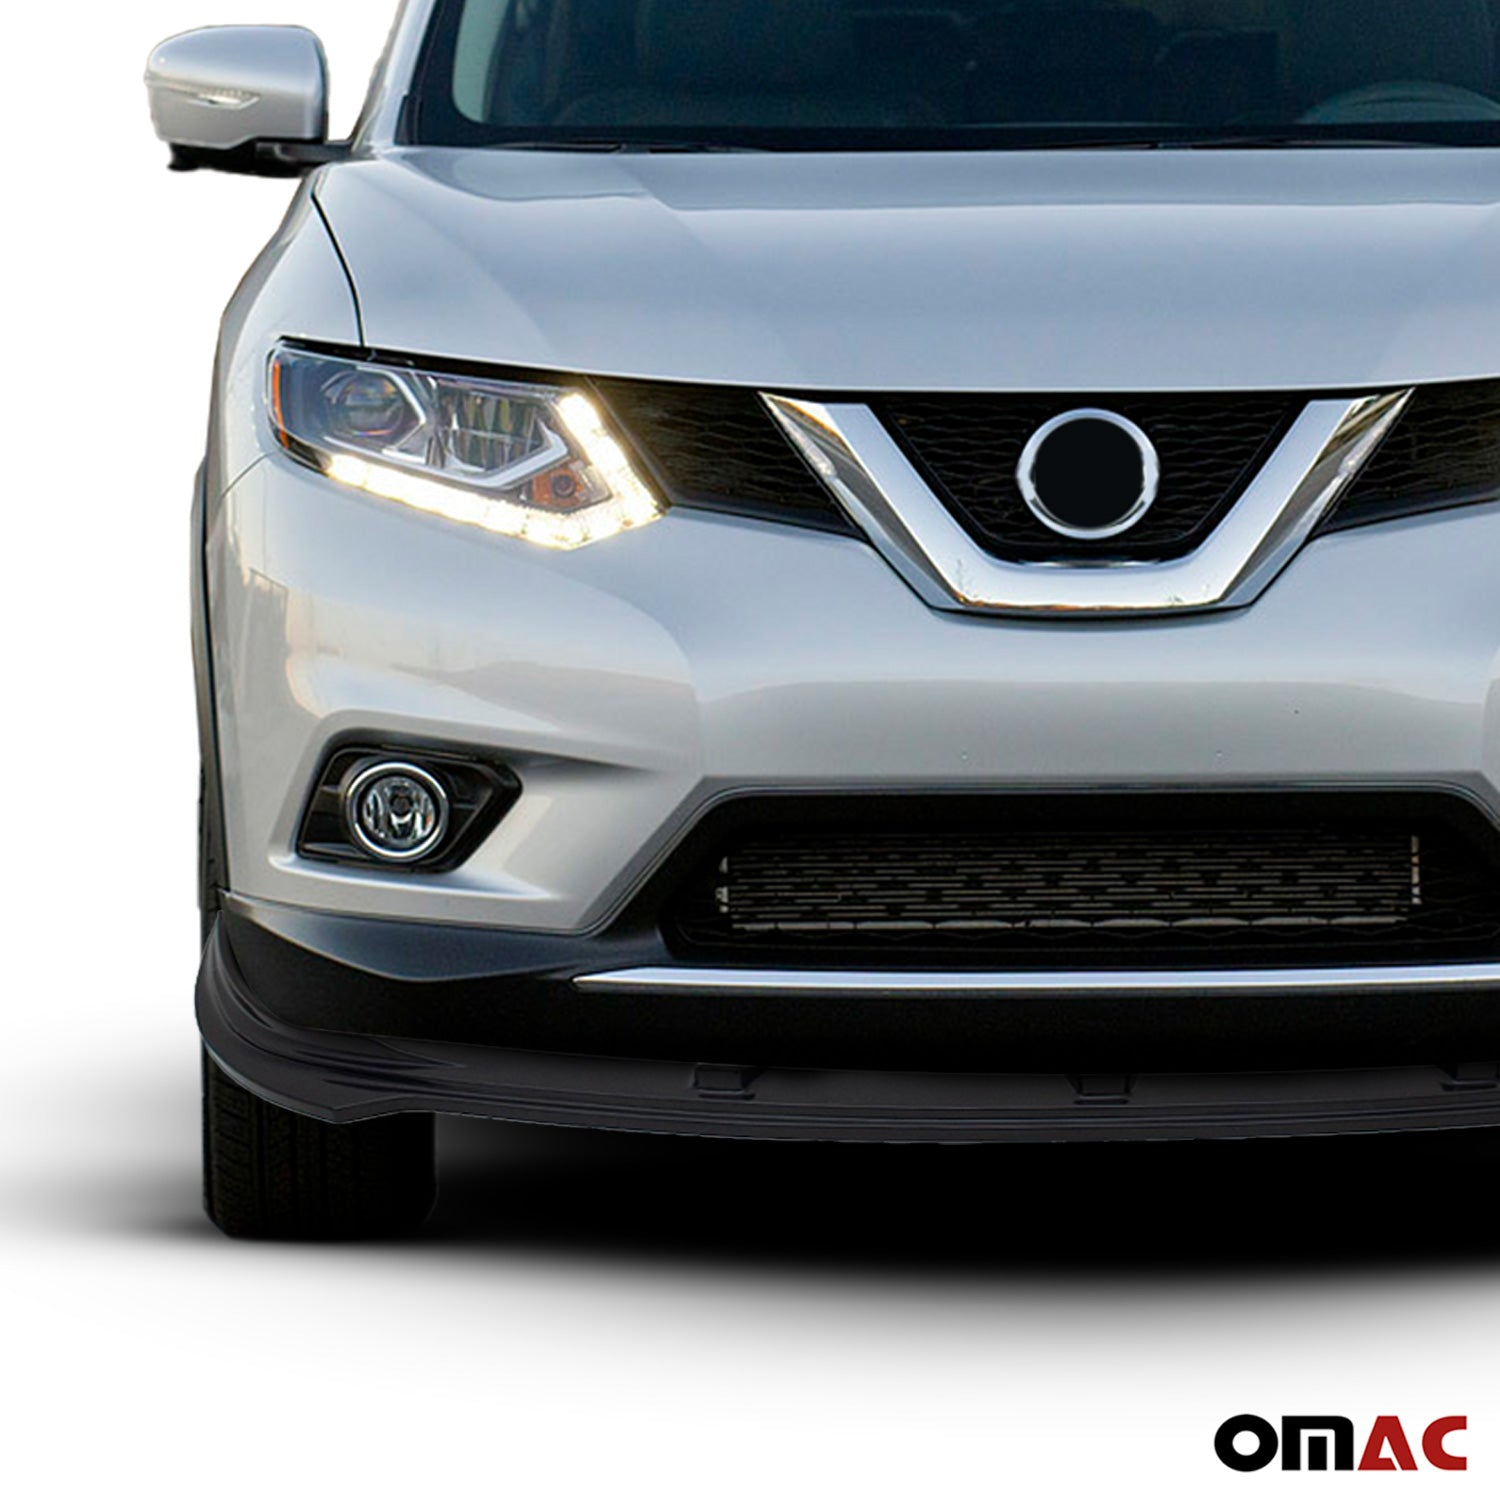 Black Abs Plastic Front Bumper Splitter Cover Fits Nissan Rogue 2014-2016